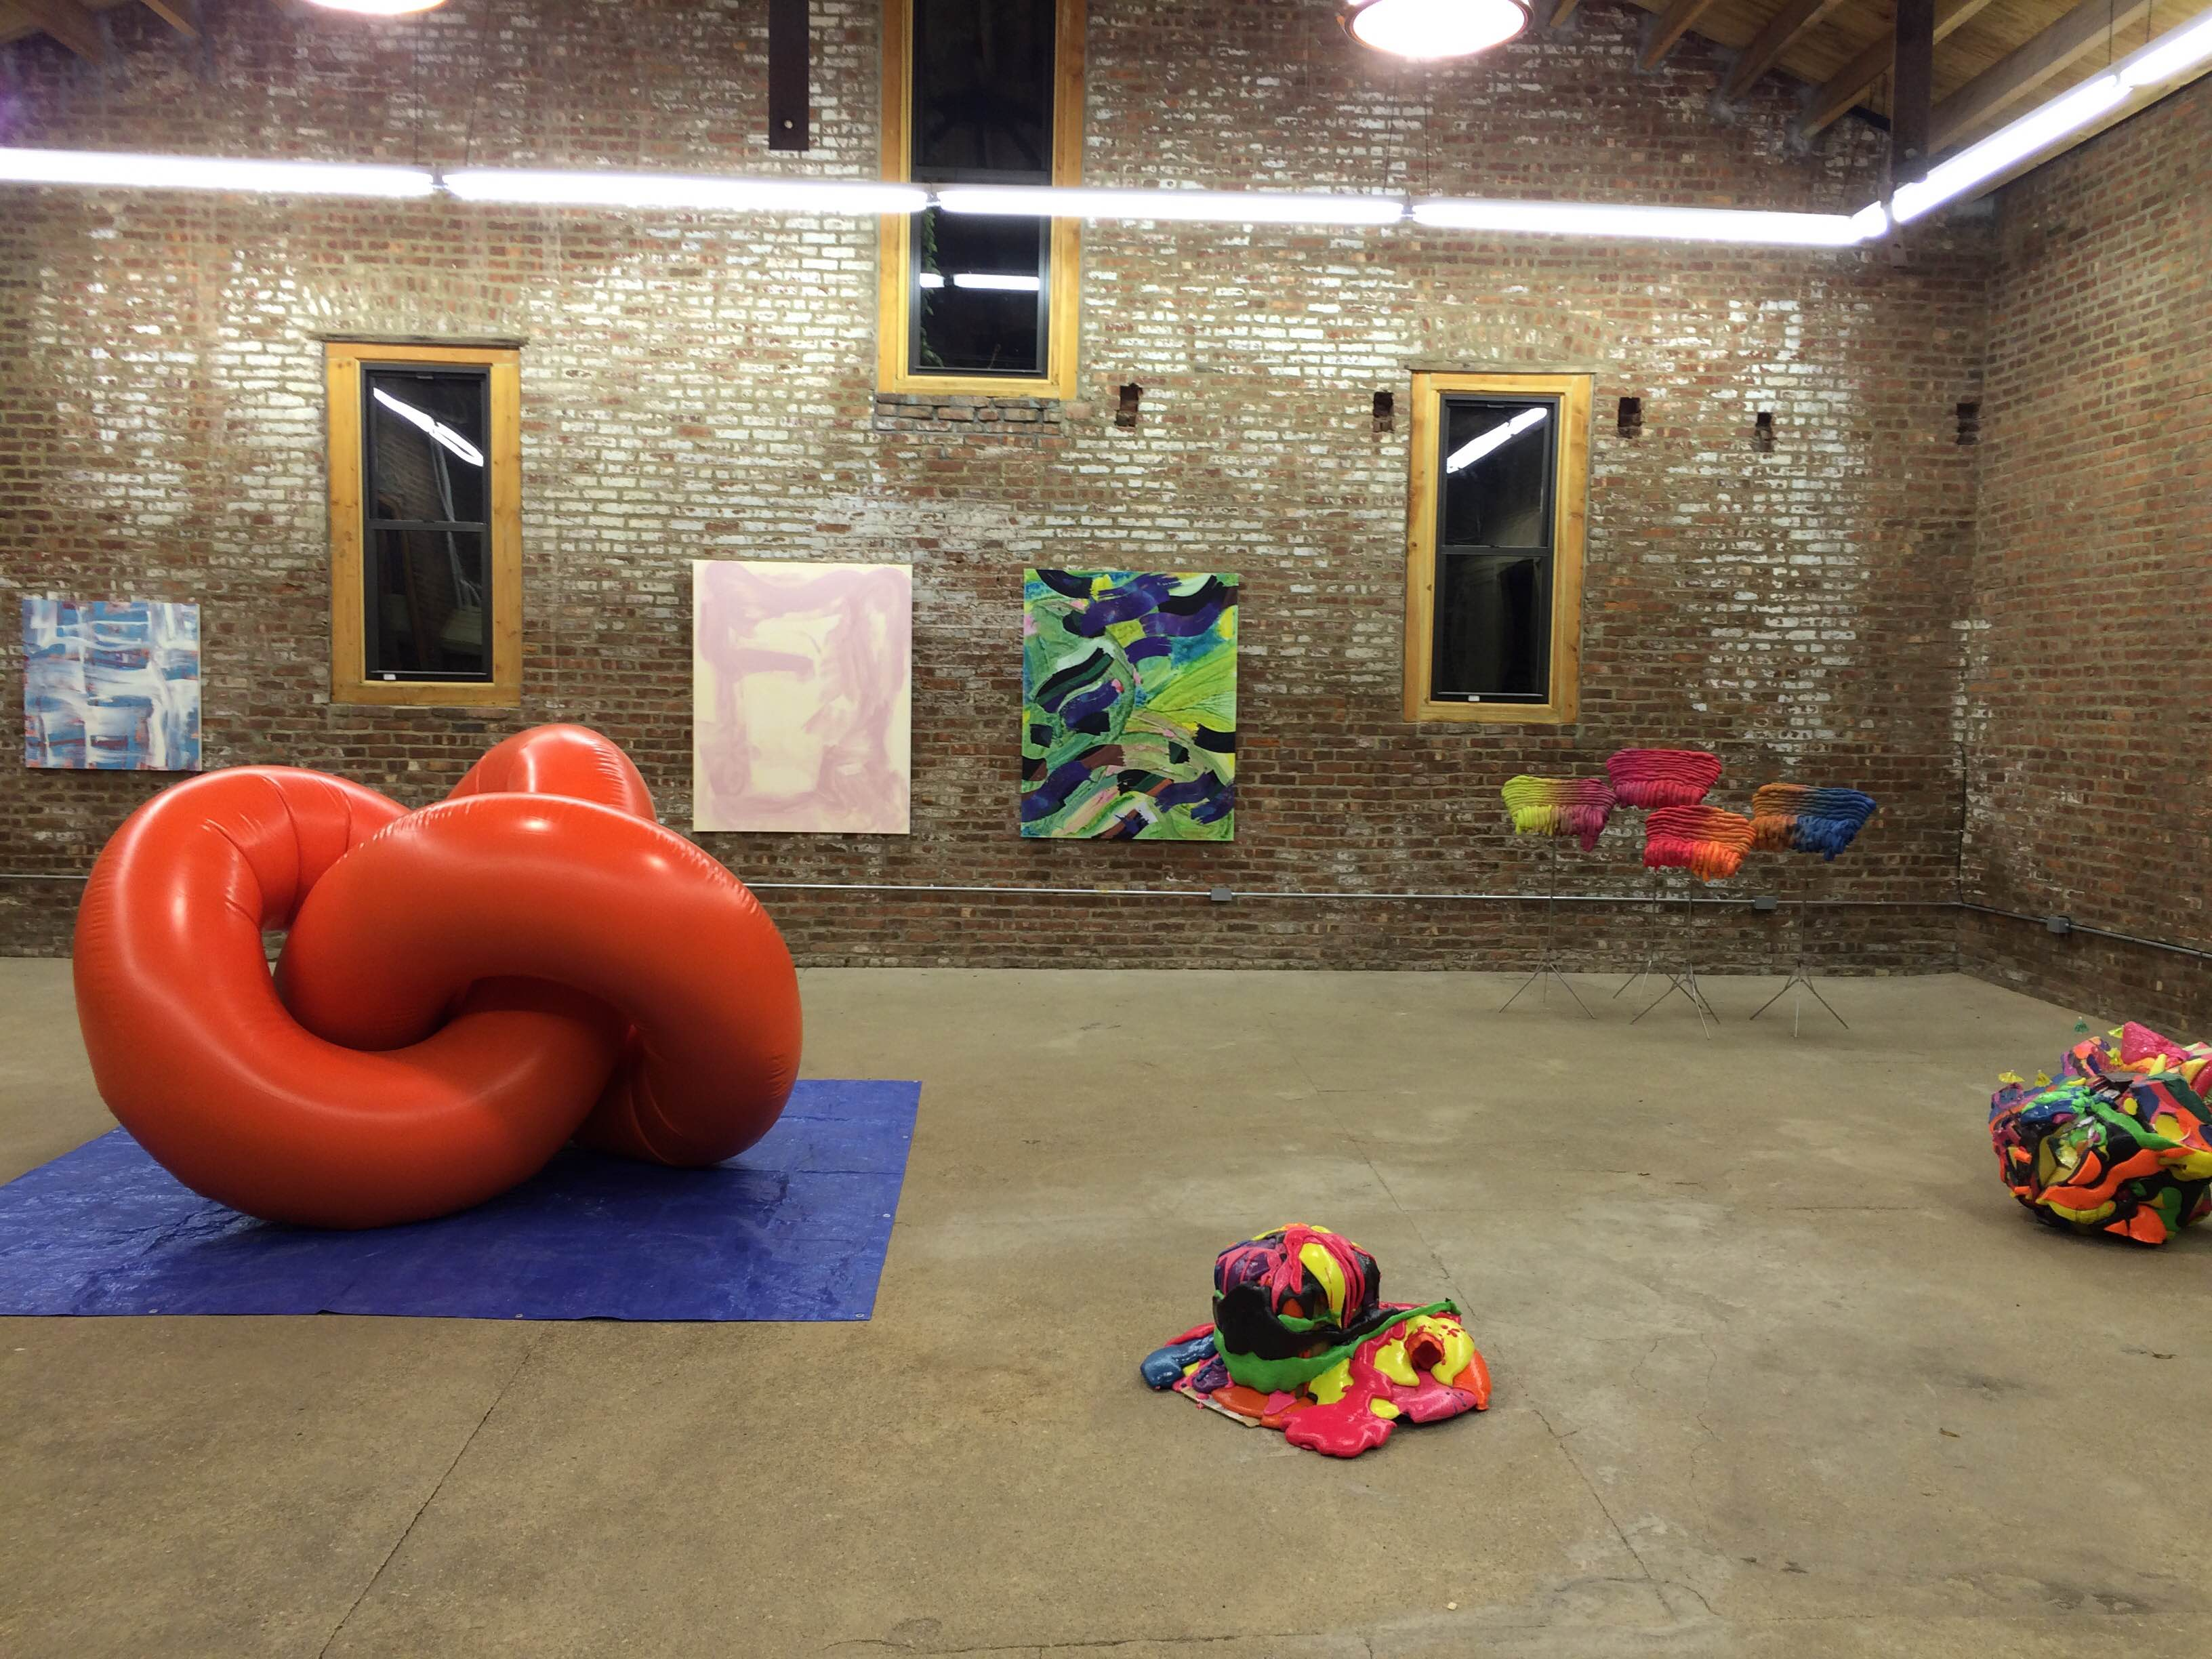 De Colores – a Group Show at the Buggy Factory (for BOS), Curated by Enrico Gomez